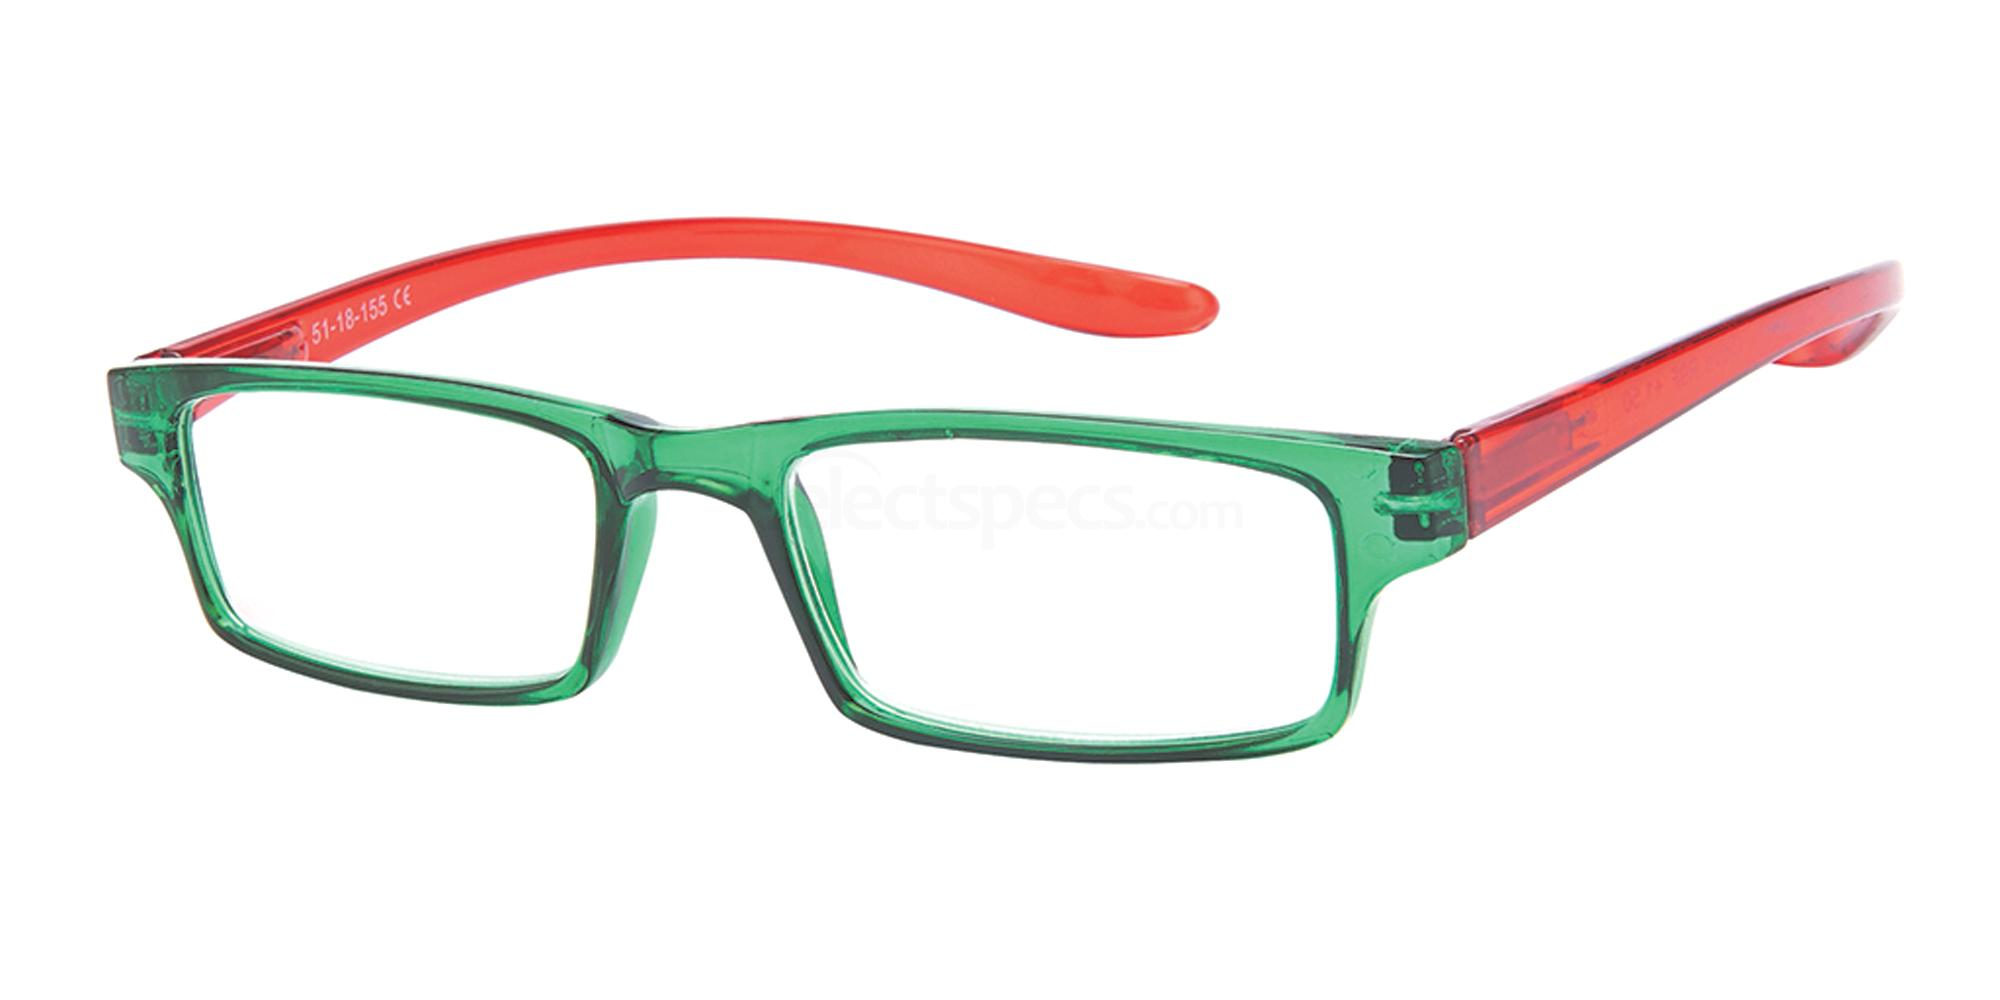 +1.00 Power Reading R9 - F: Green / Red Accessories, Univo Readers